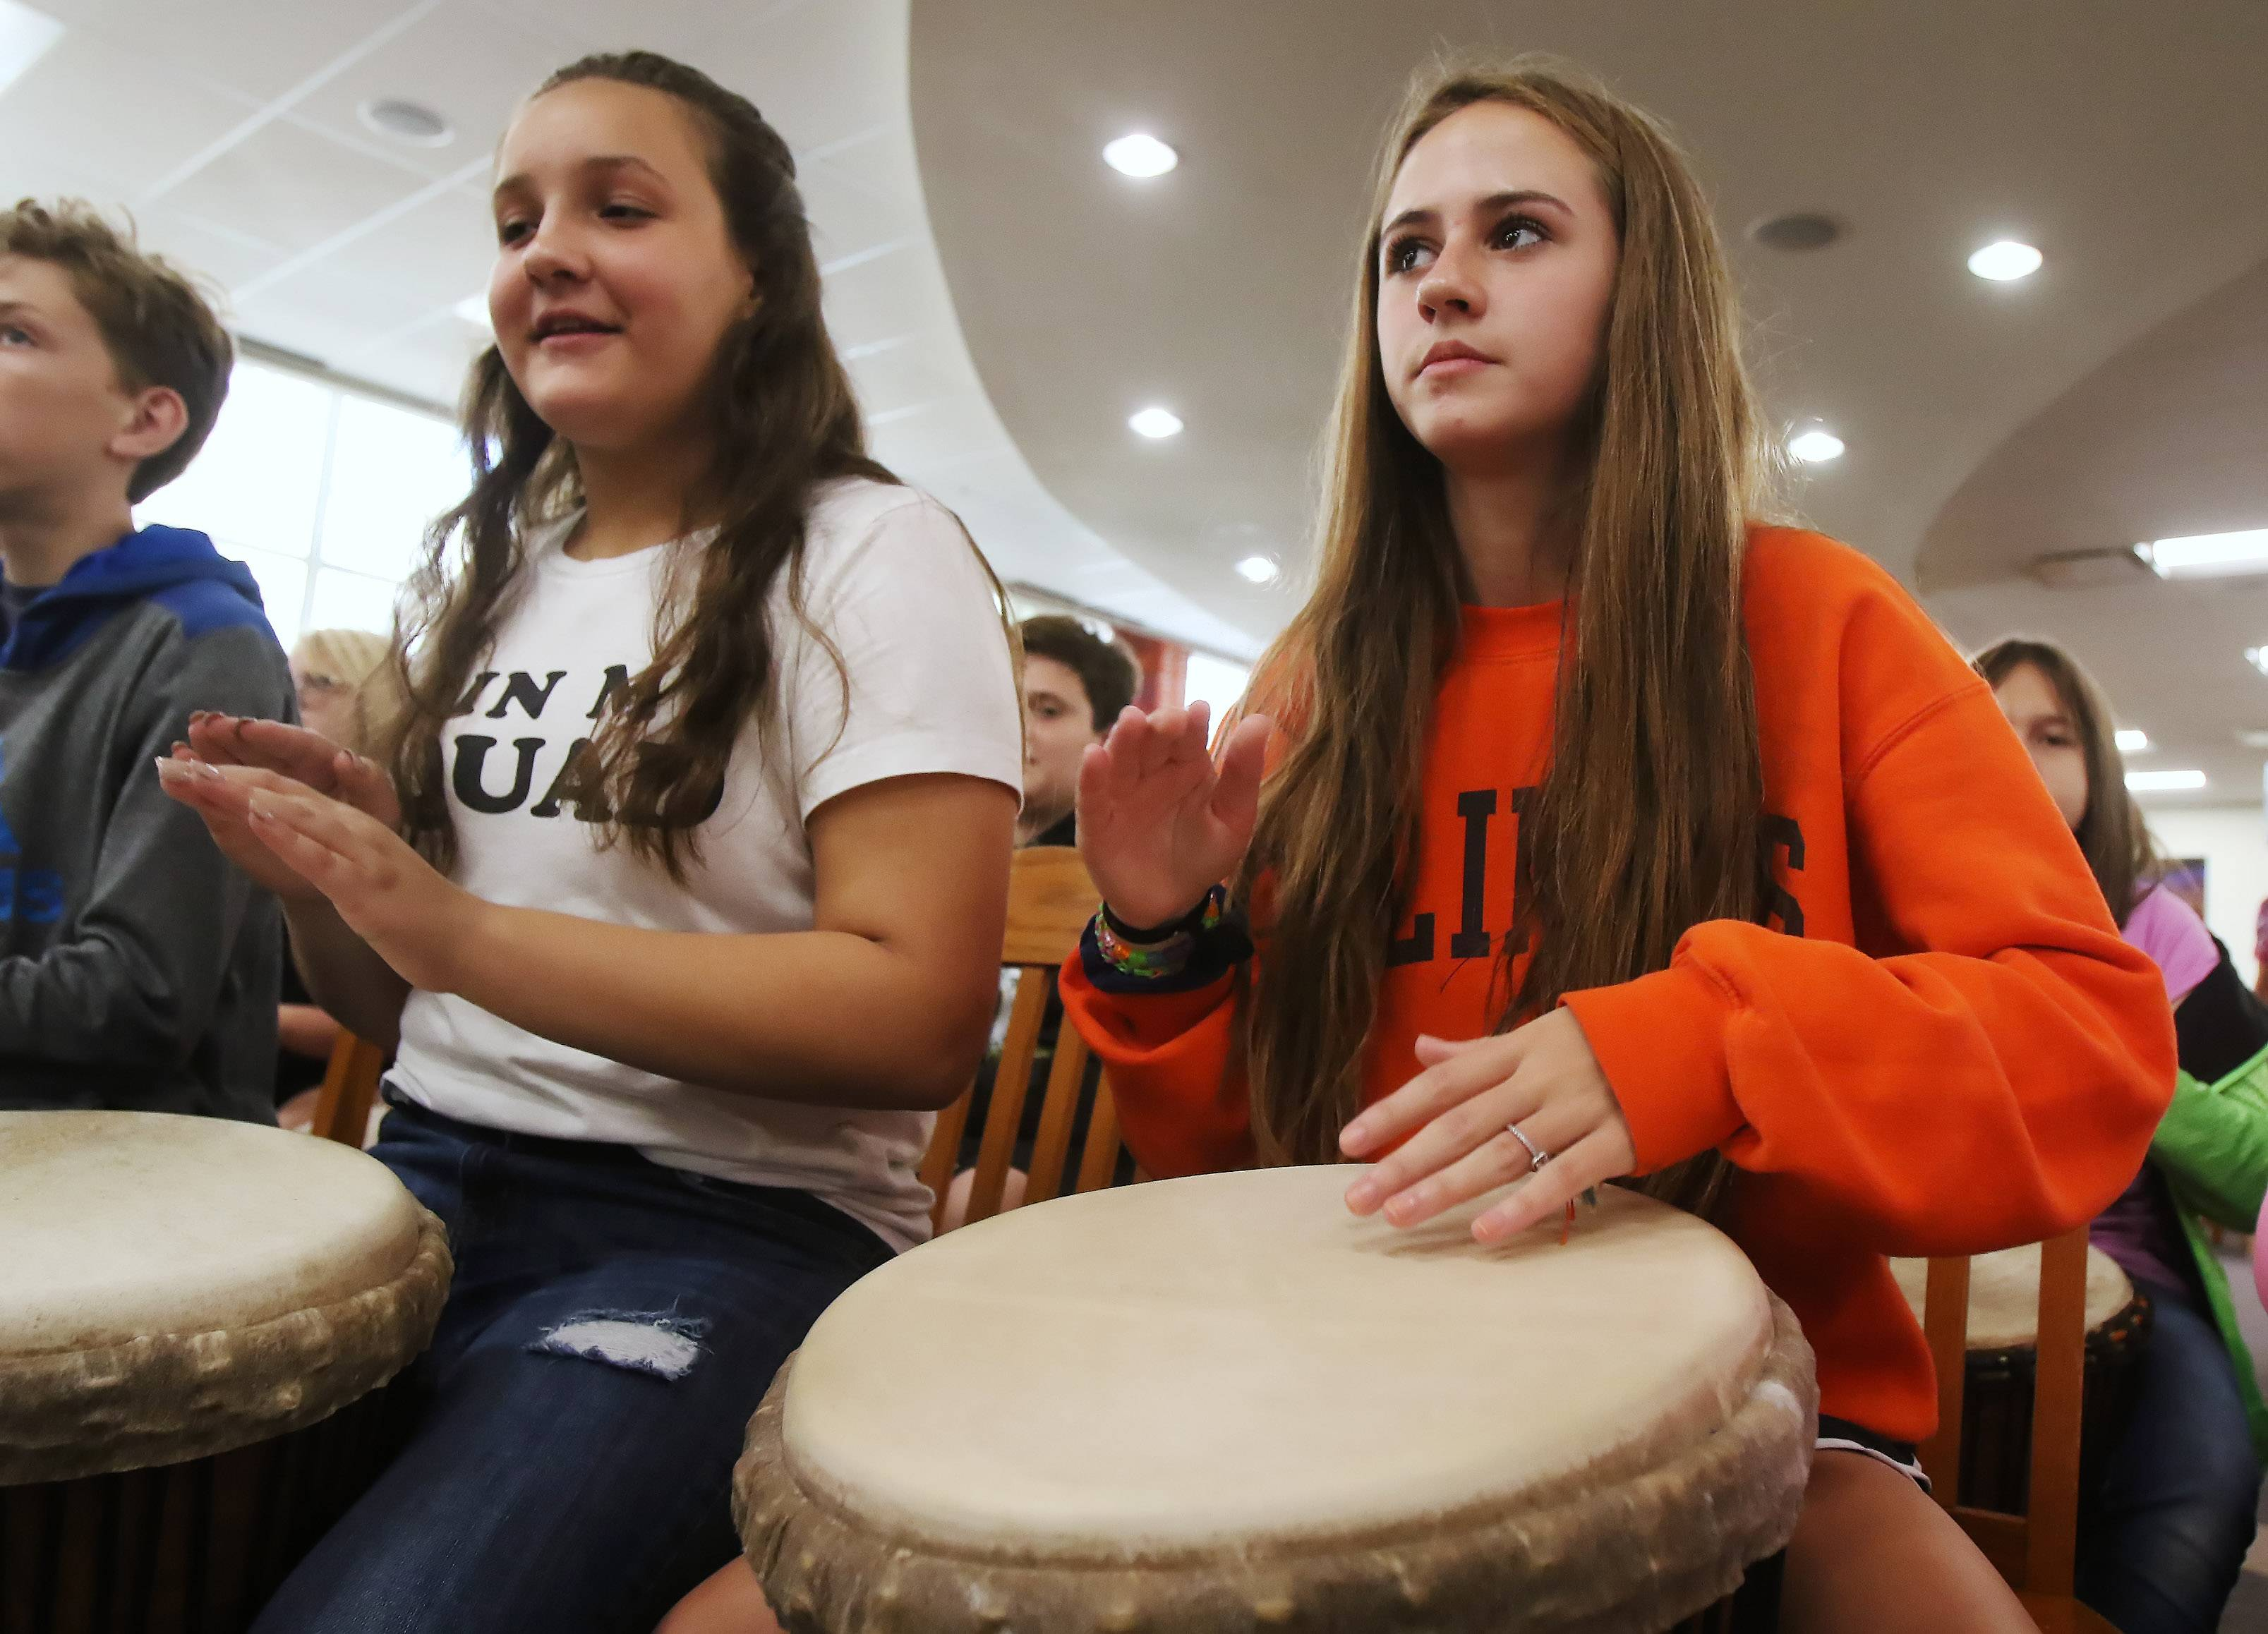 Nicole Stefaniak, right, and Ana Zivkov play djembe drums as students learned to play African drums Thursday at Highland Middle School in Libertyville.